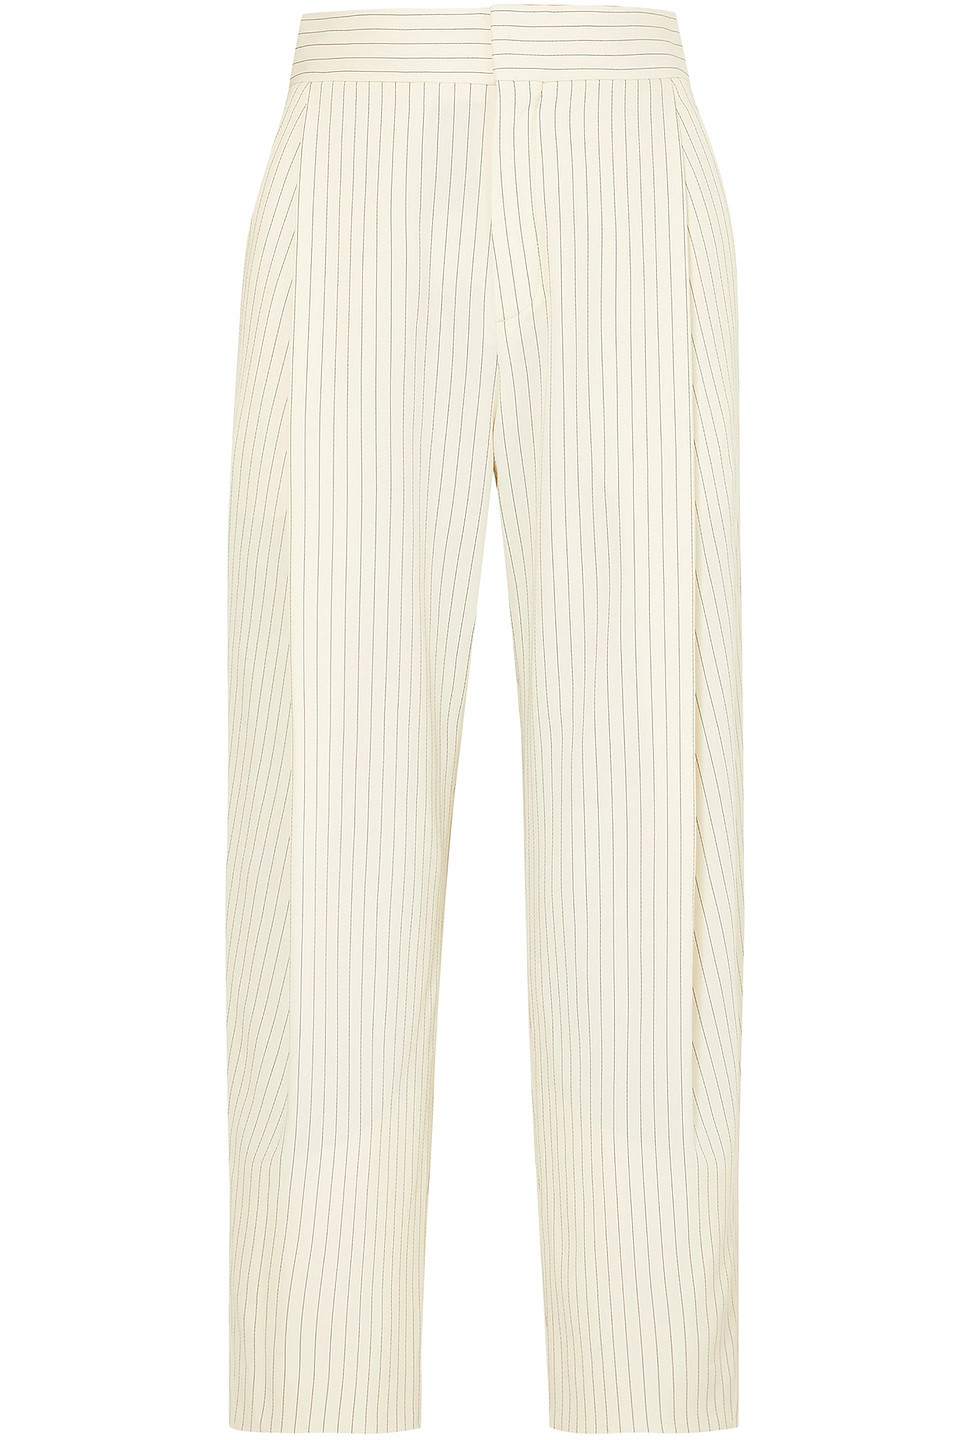 Chloé | Chloe Woman Cropped Pinstriped Woven Tapered Pants Cream | Clouty